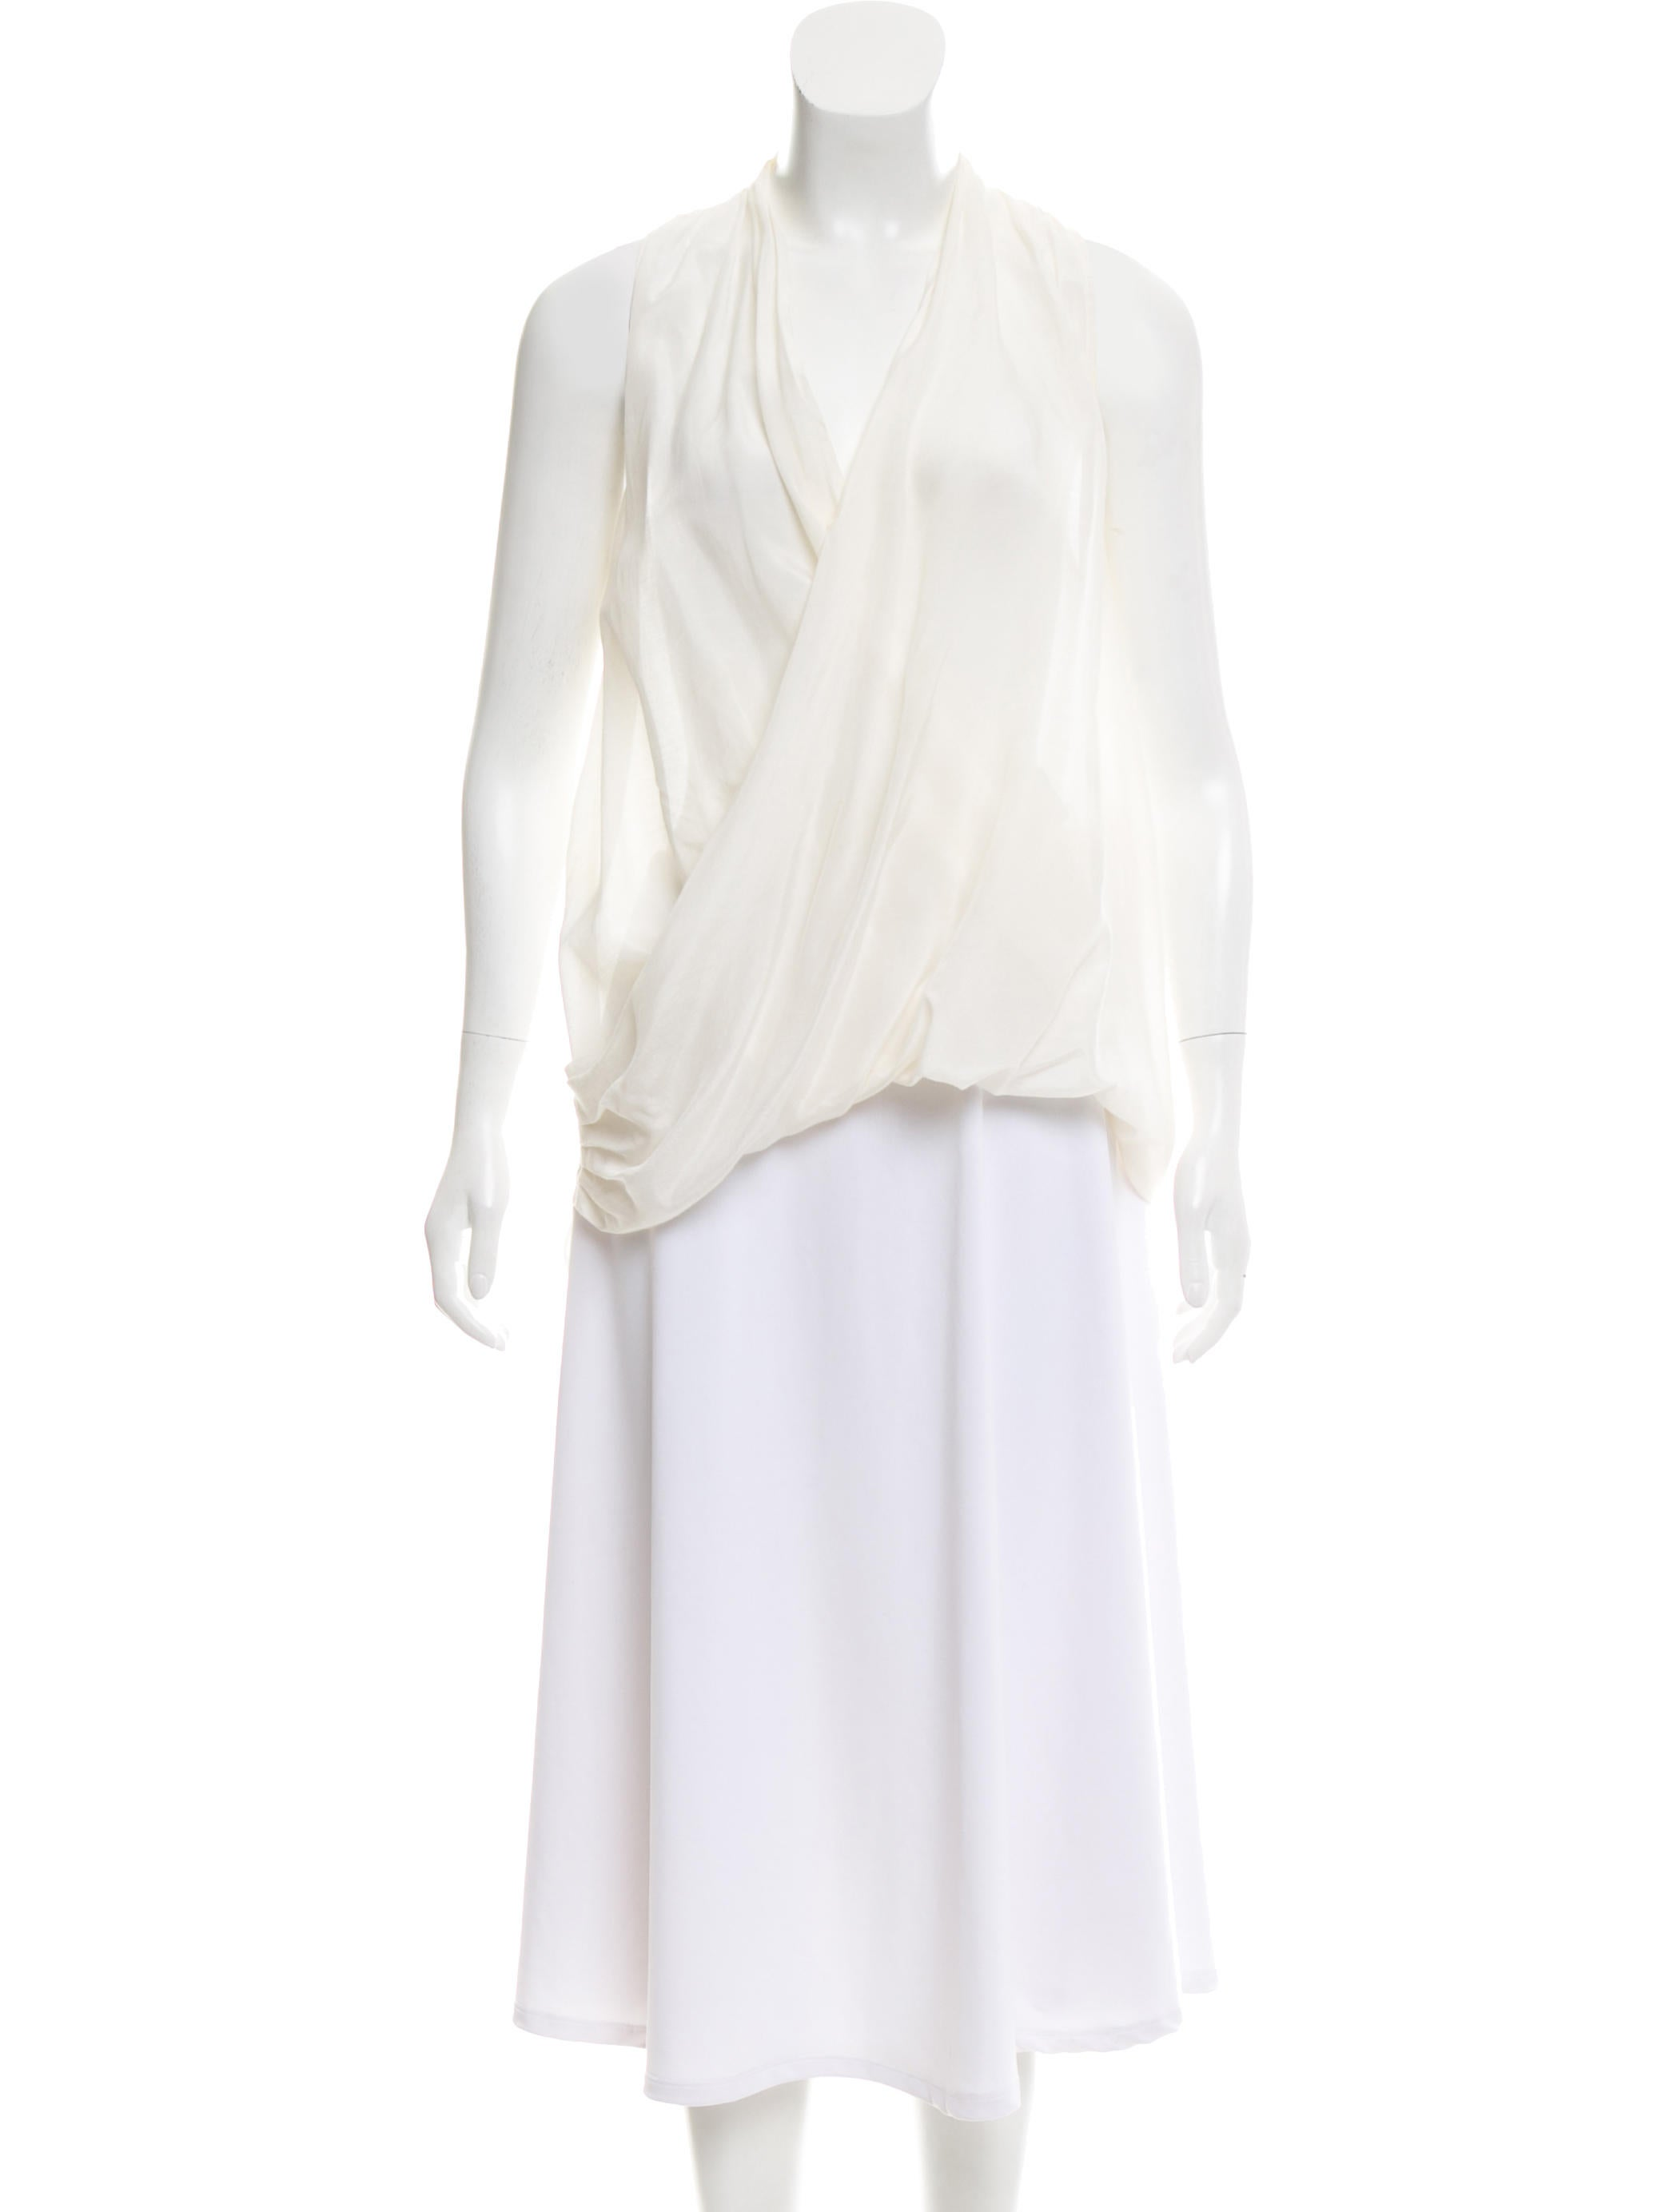 products with rodriguez robert detail ivory studio shirt w drapes blouse draped